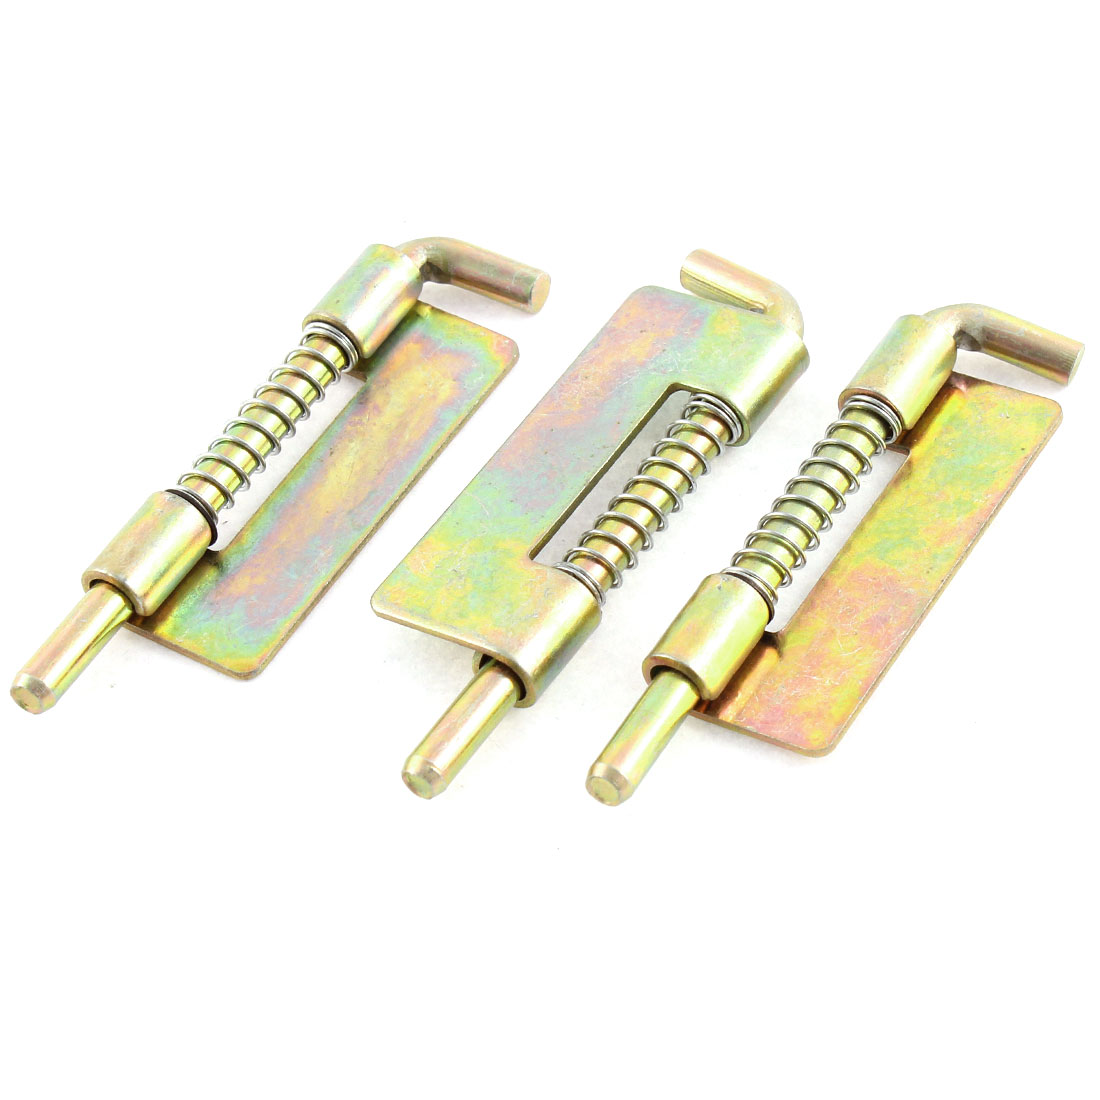 "Bronze Tone 5mm Rod Spring Loaded Security Barrel Bolt Latch 2.8"" Length 3PCS"